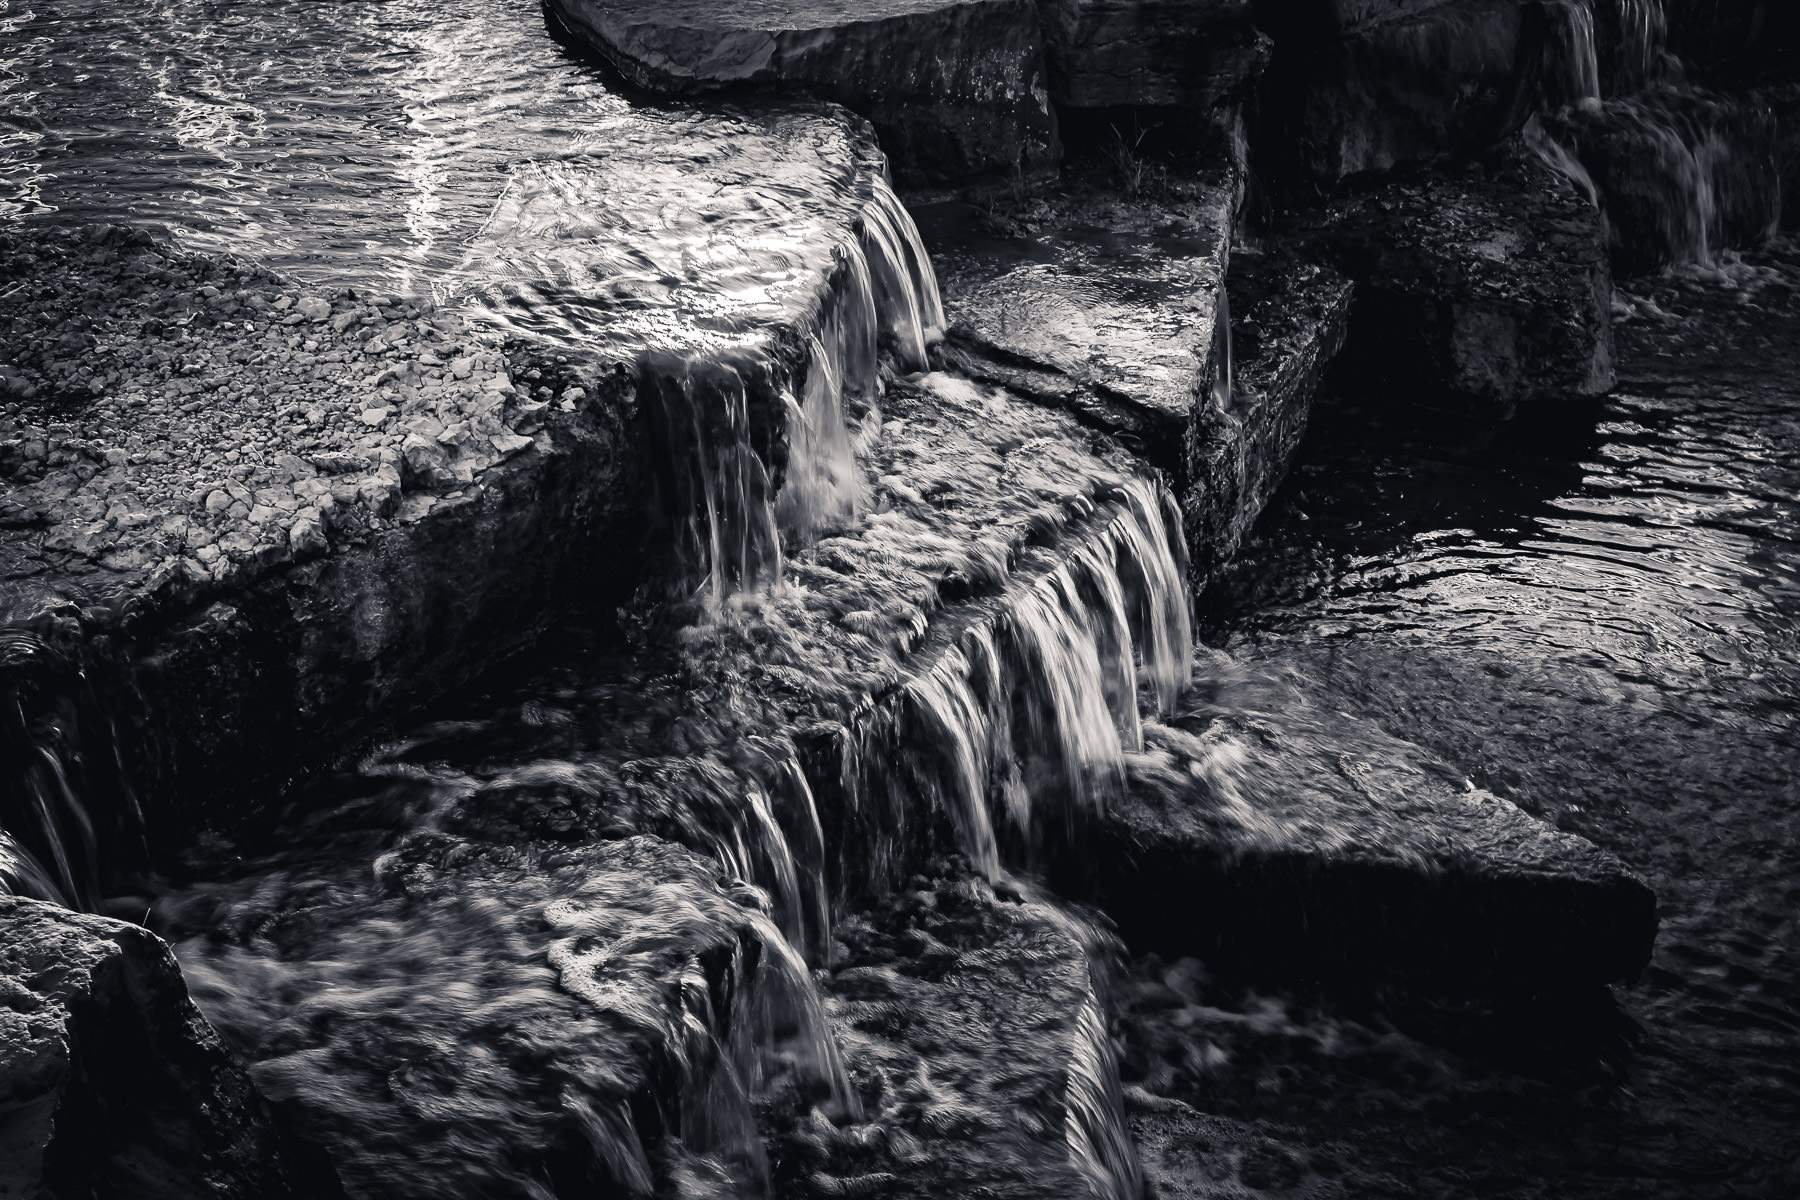 Water flows over rocks at Hall Office Park in Frisco, Texas.